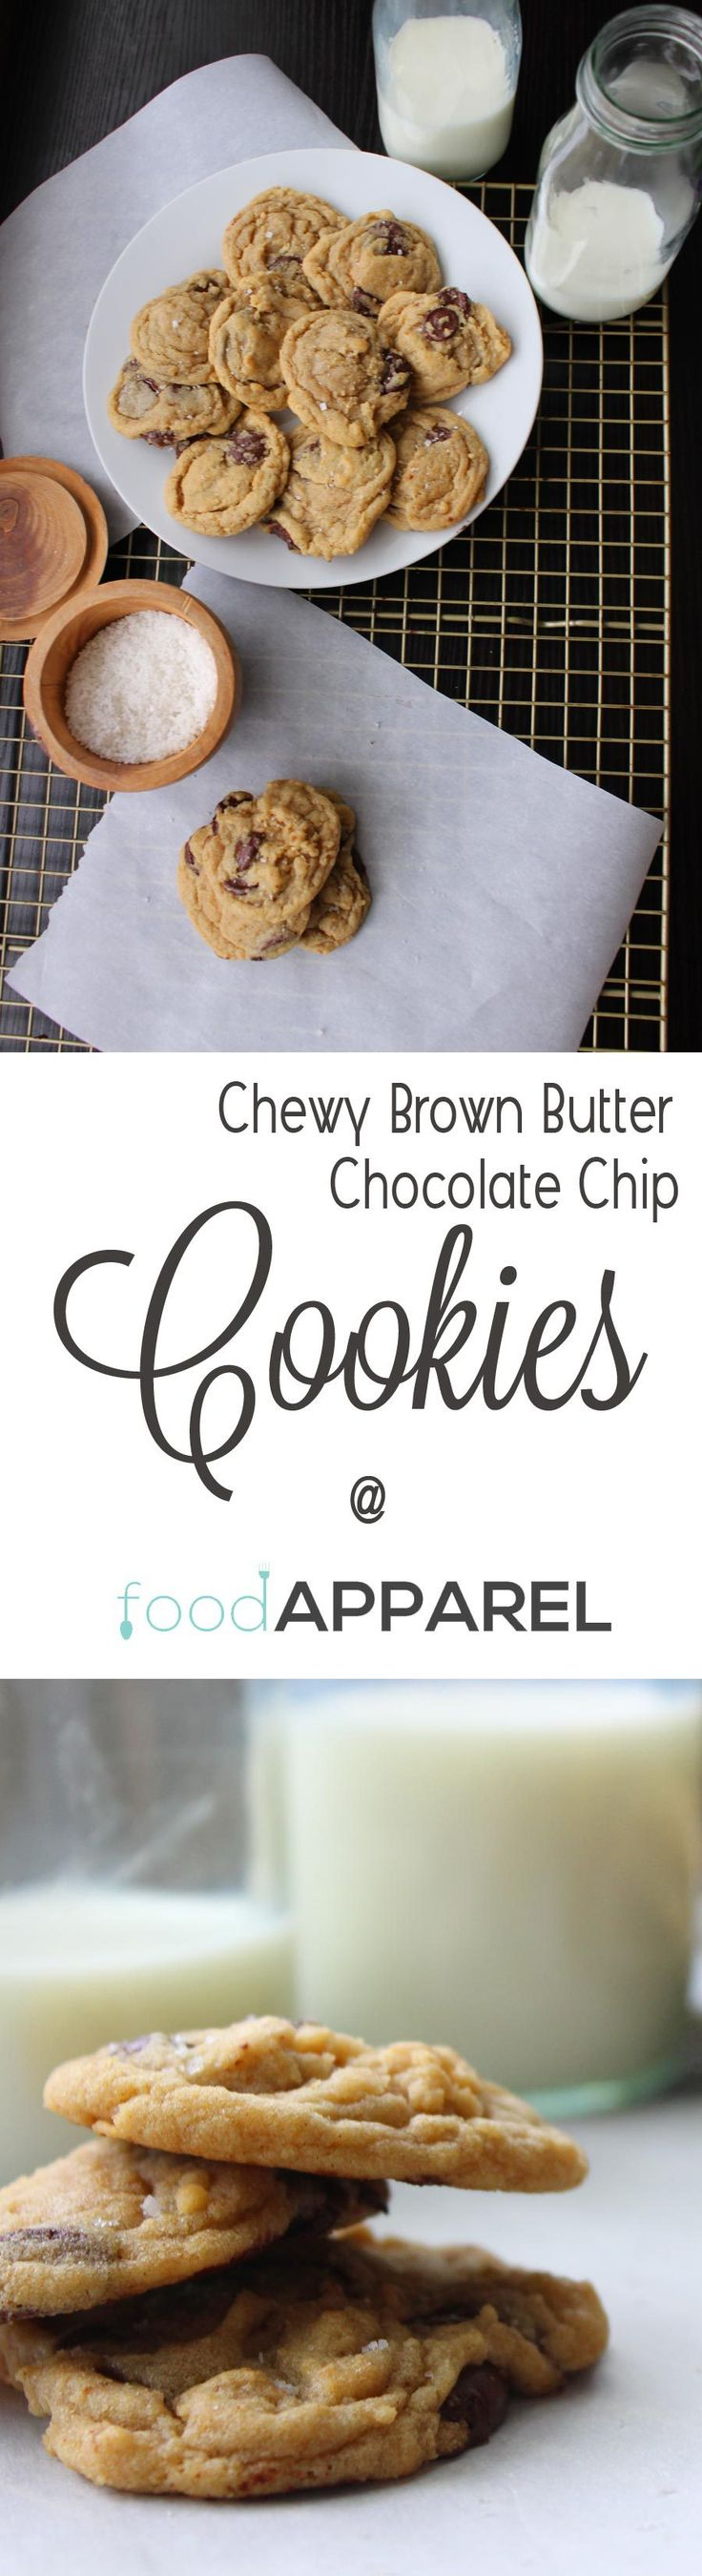 74 best Chocolate Chip Cookies images on Pinterest | Chocolate ...